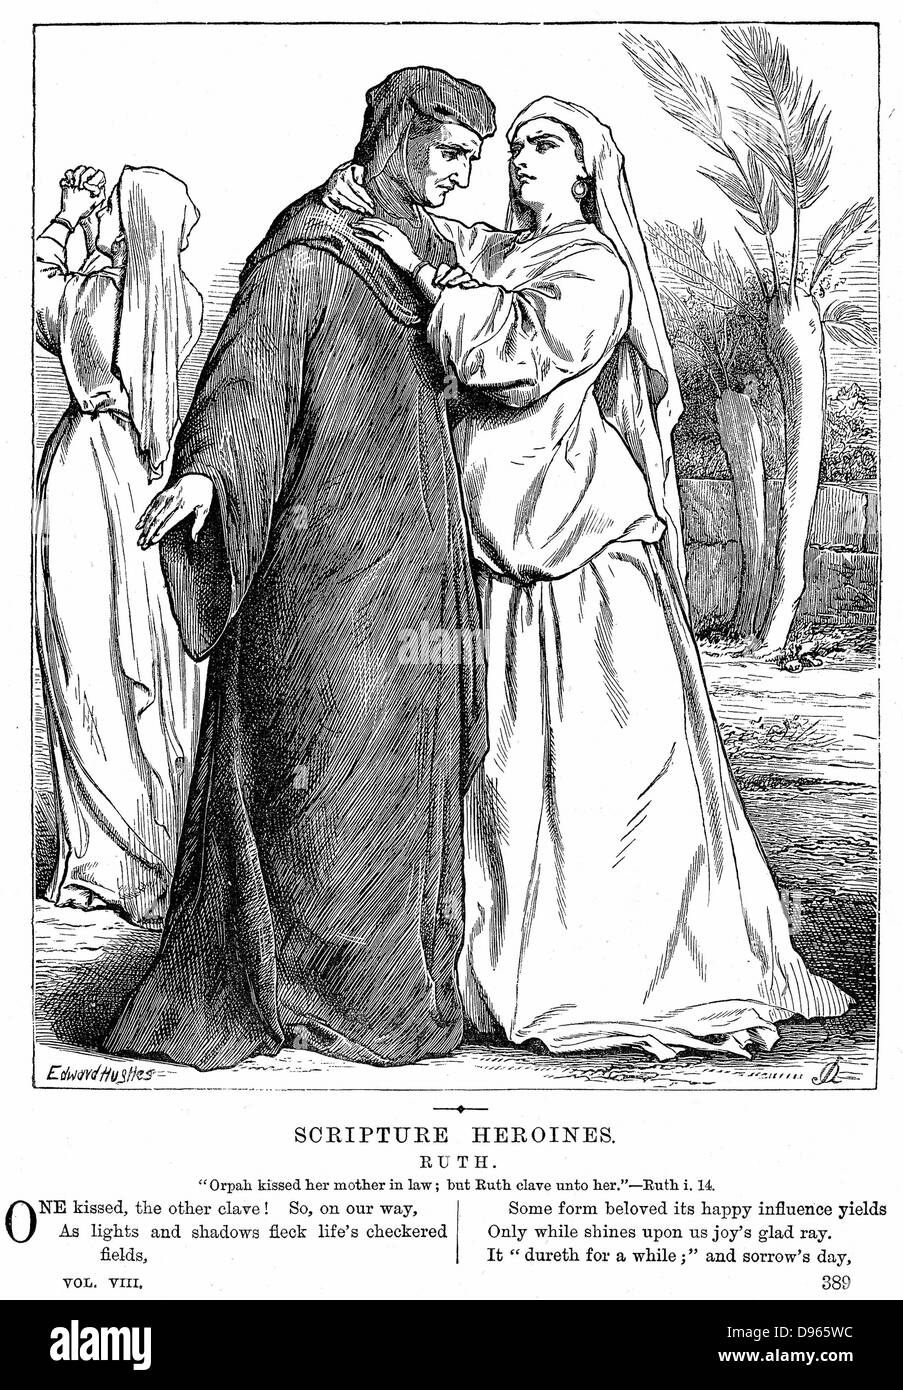 Ruth embracing her mother-in-law.' Bible' 2 Ruth 1.14. Wood engraving 1873. - Stock Image